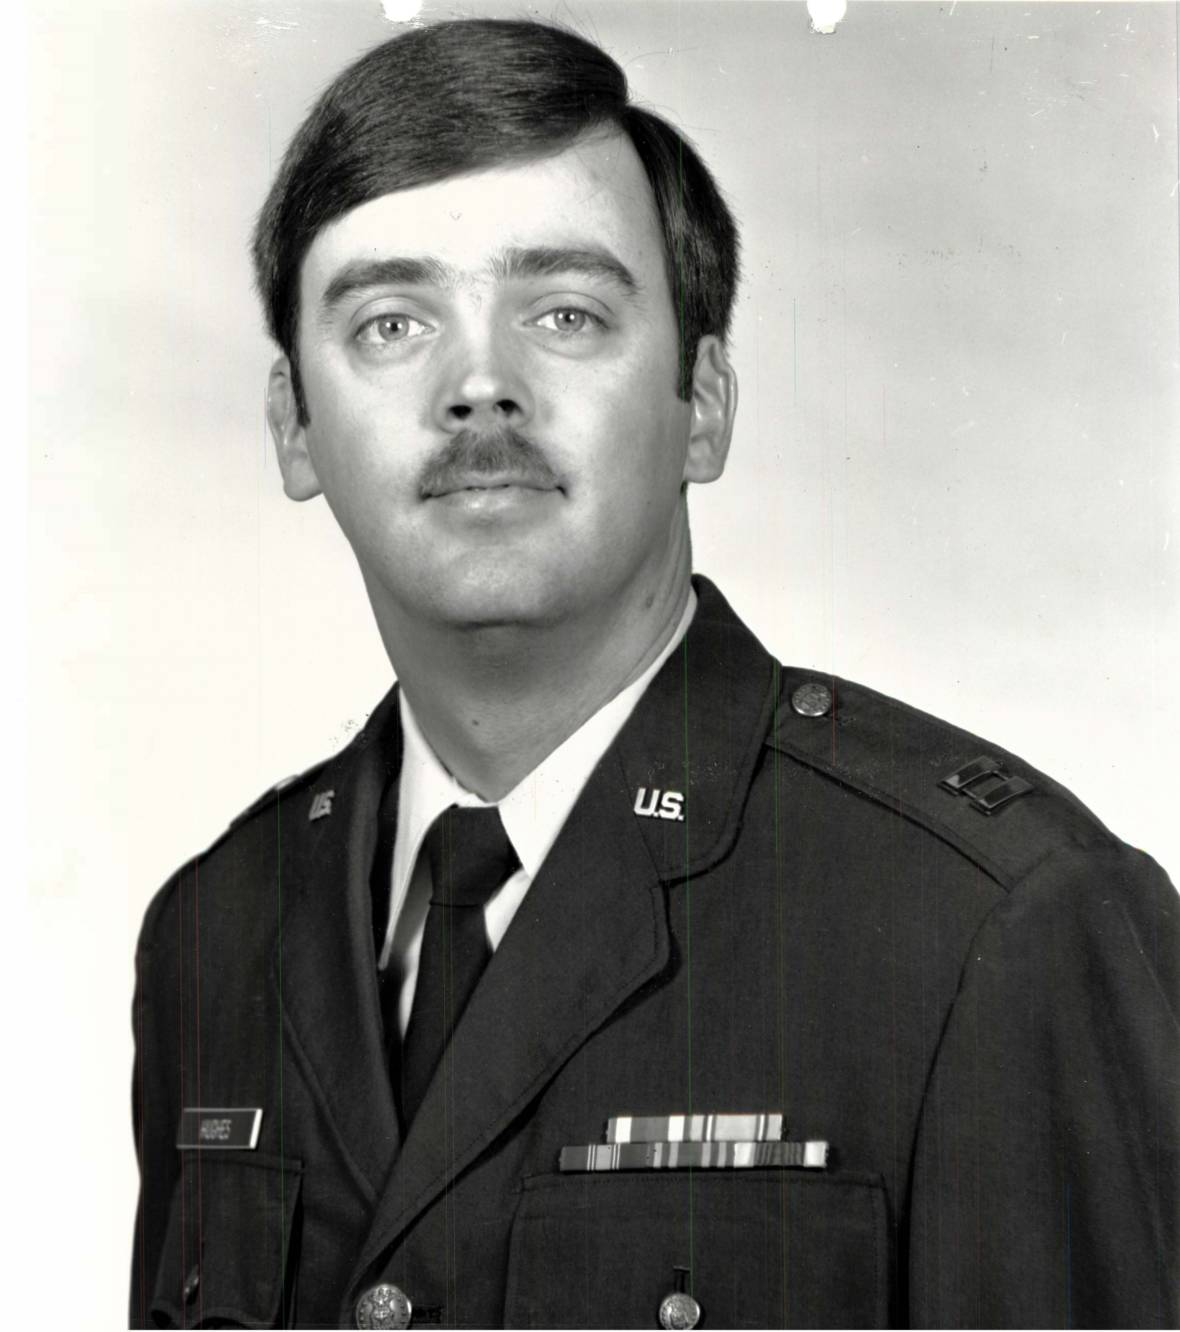 After 35 Years, Air Force Deserter Found Living in California Under False Name